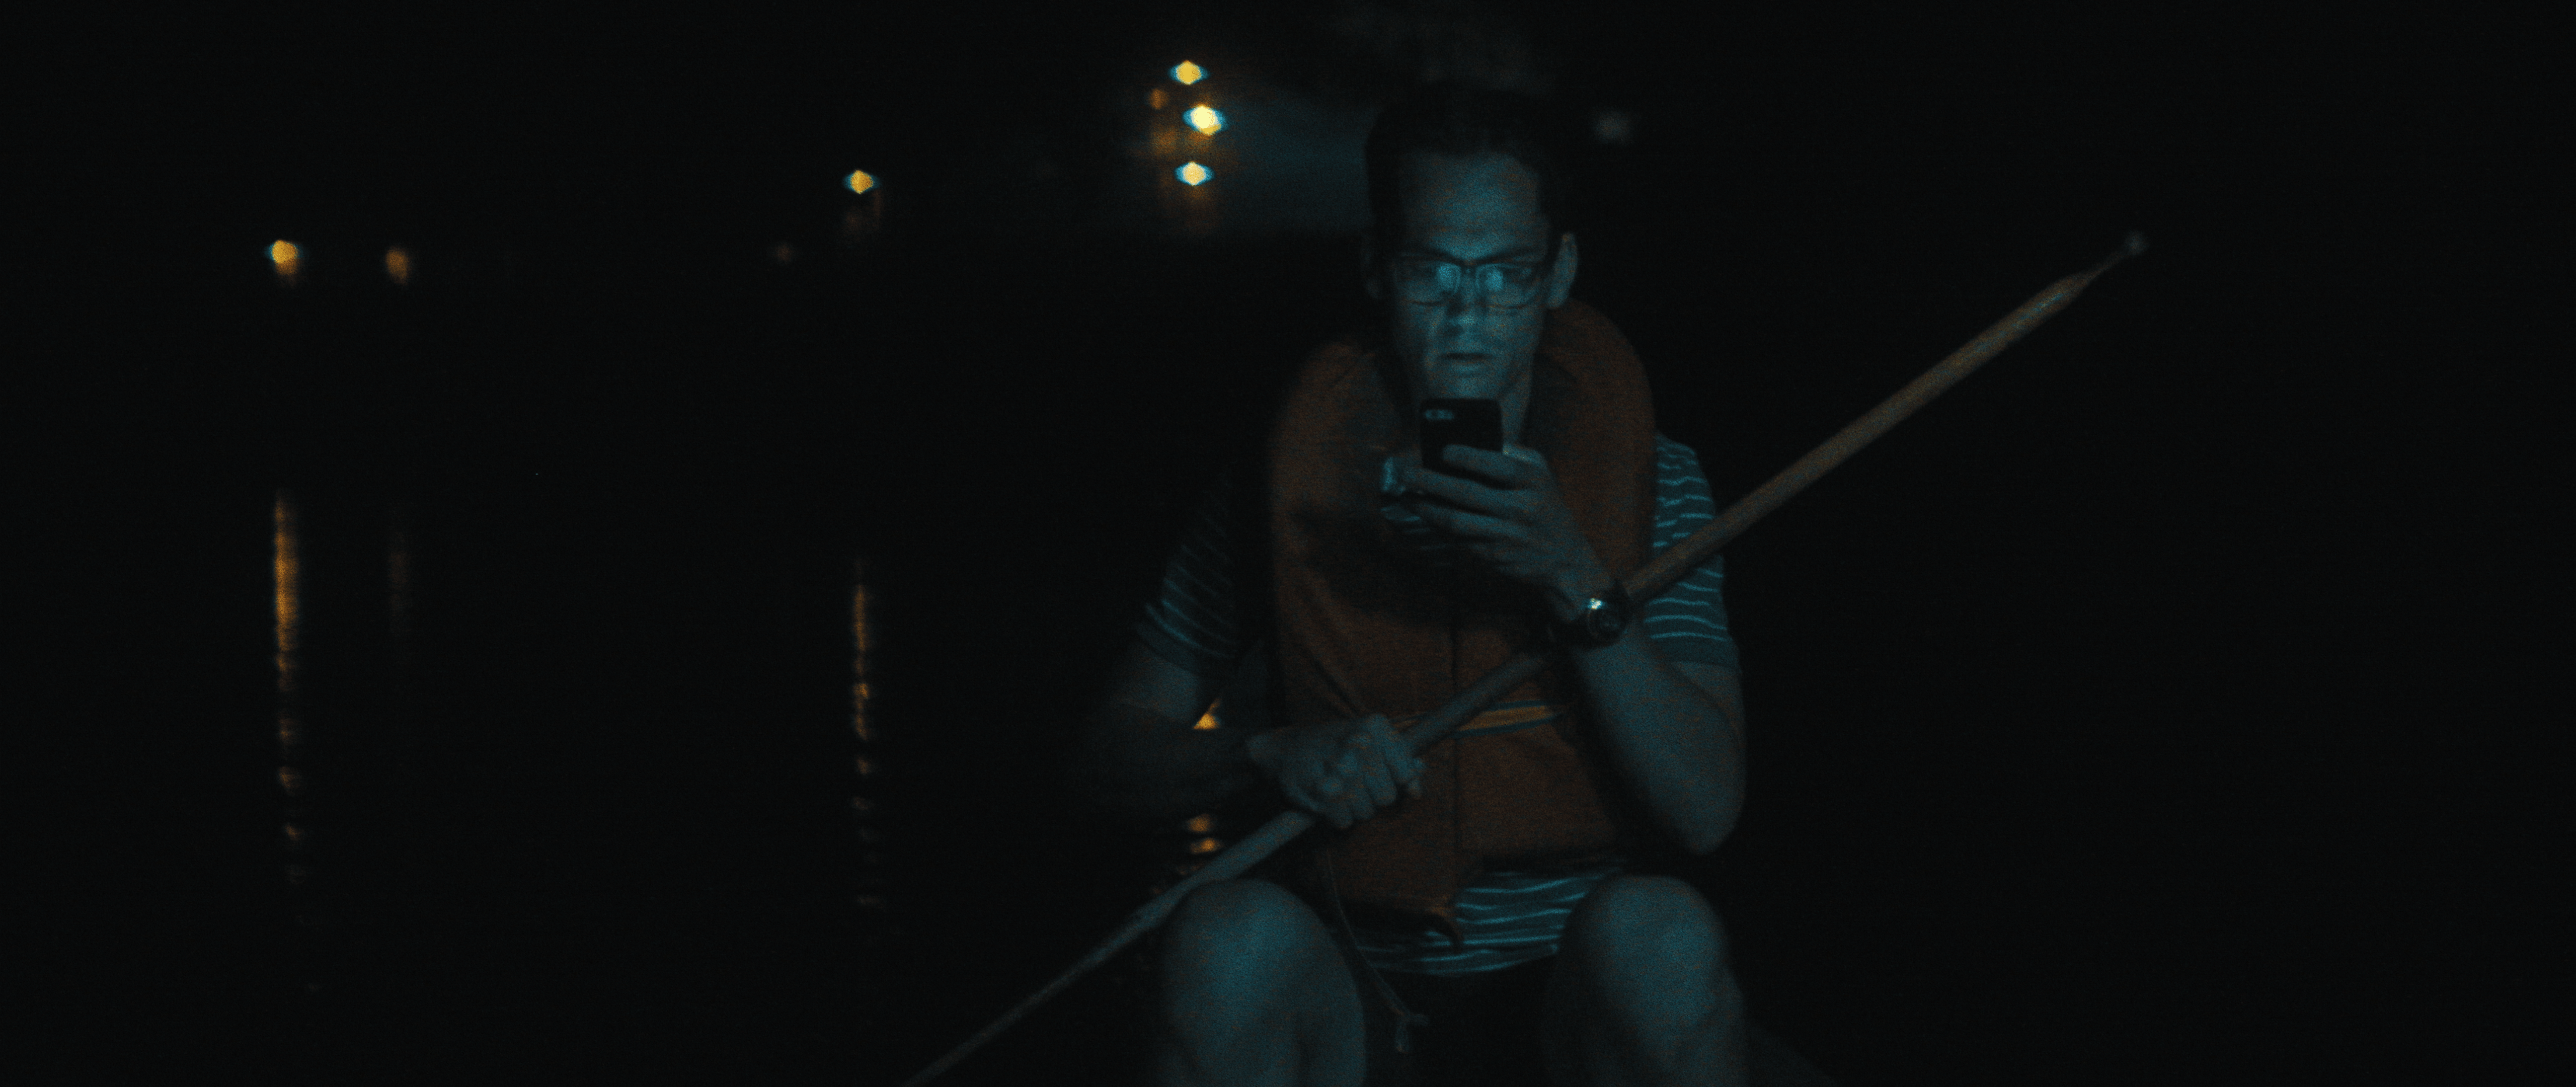 Camp Wedding film still where a man is on a lake staring at his phone.